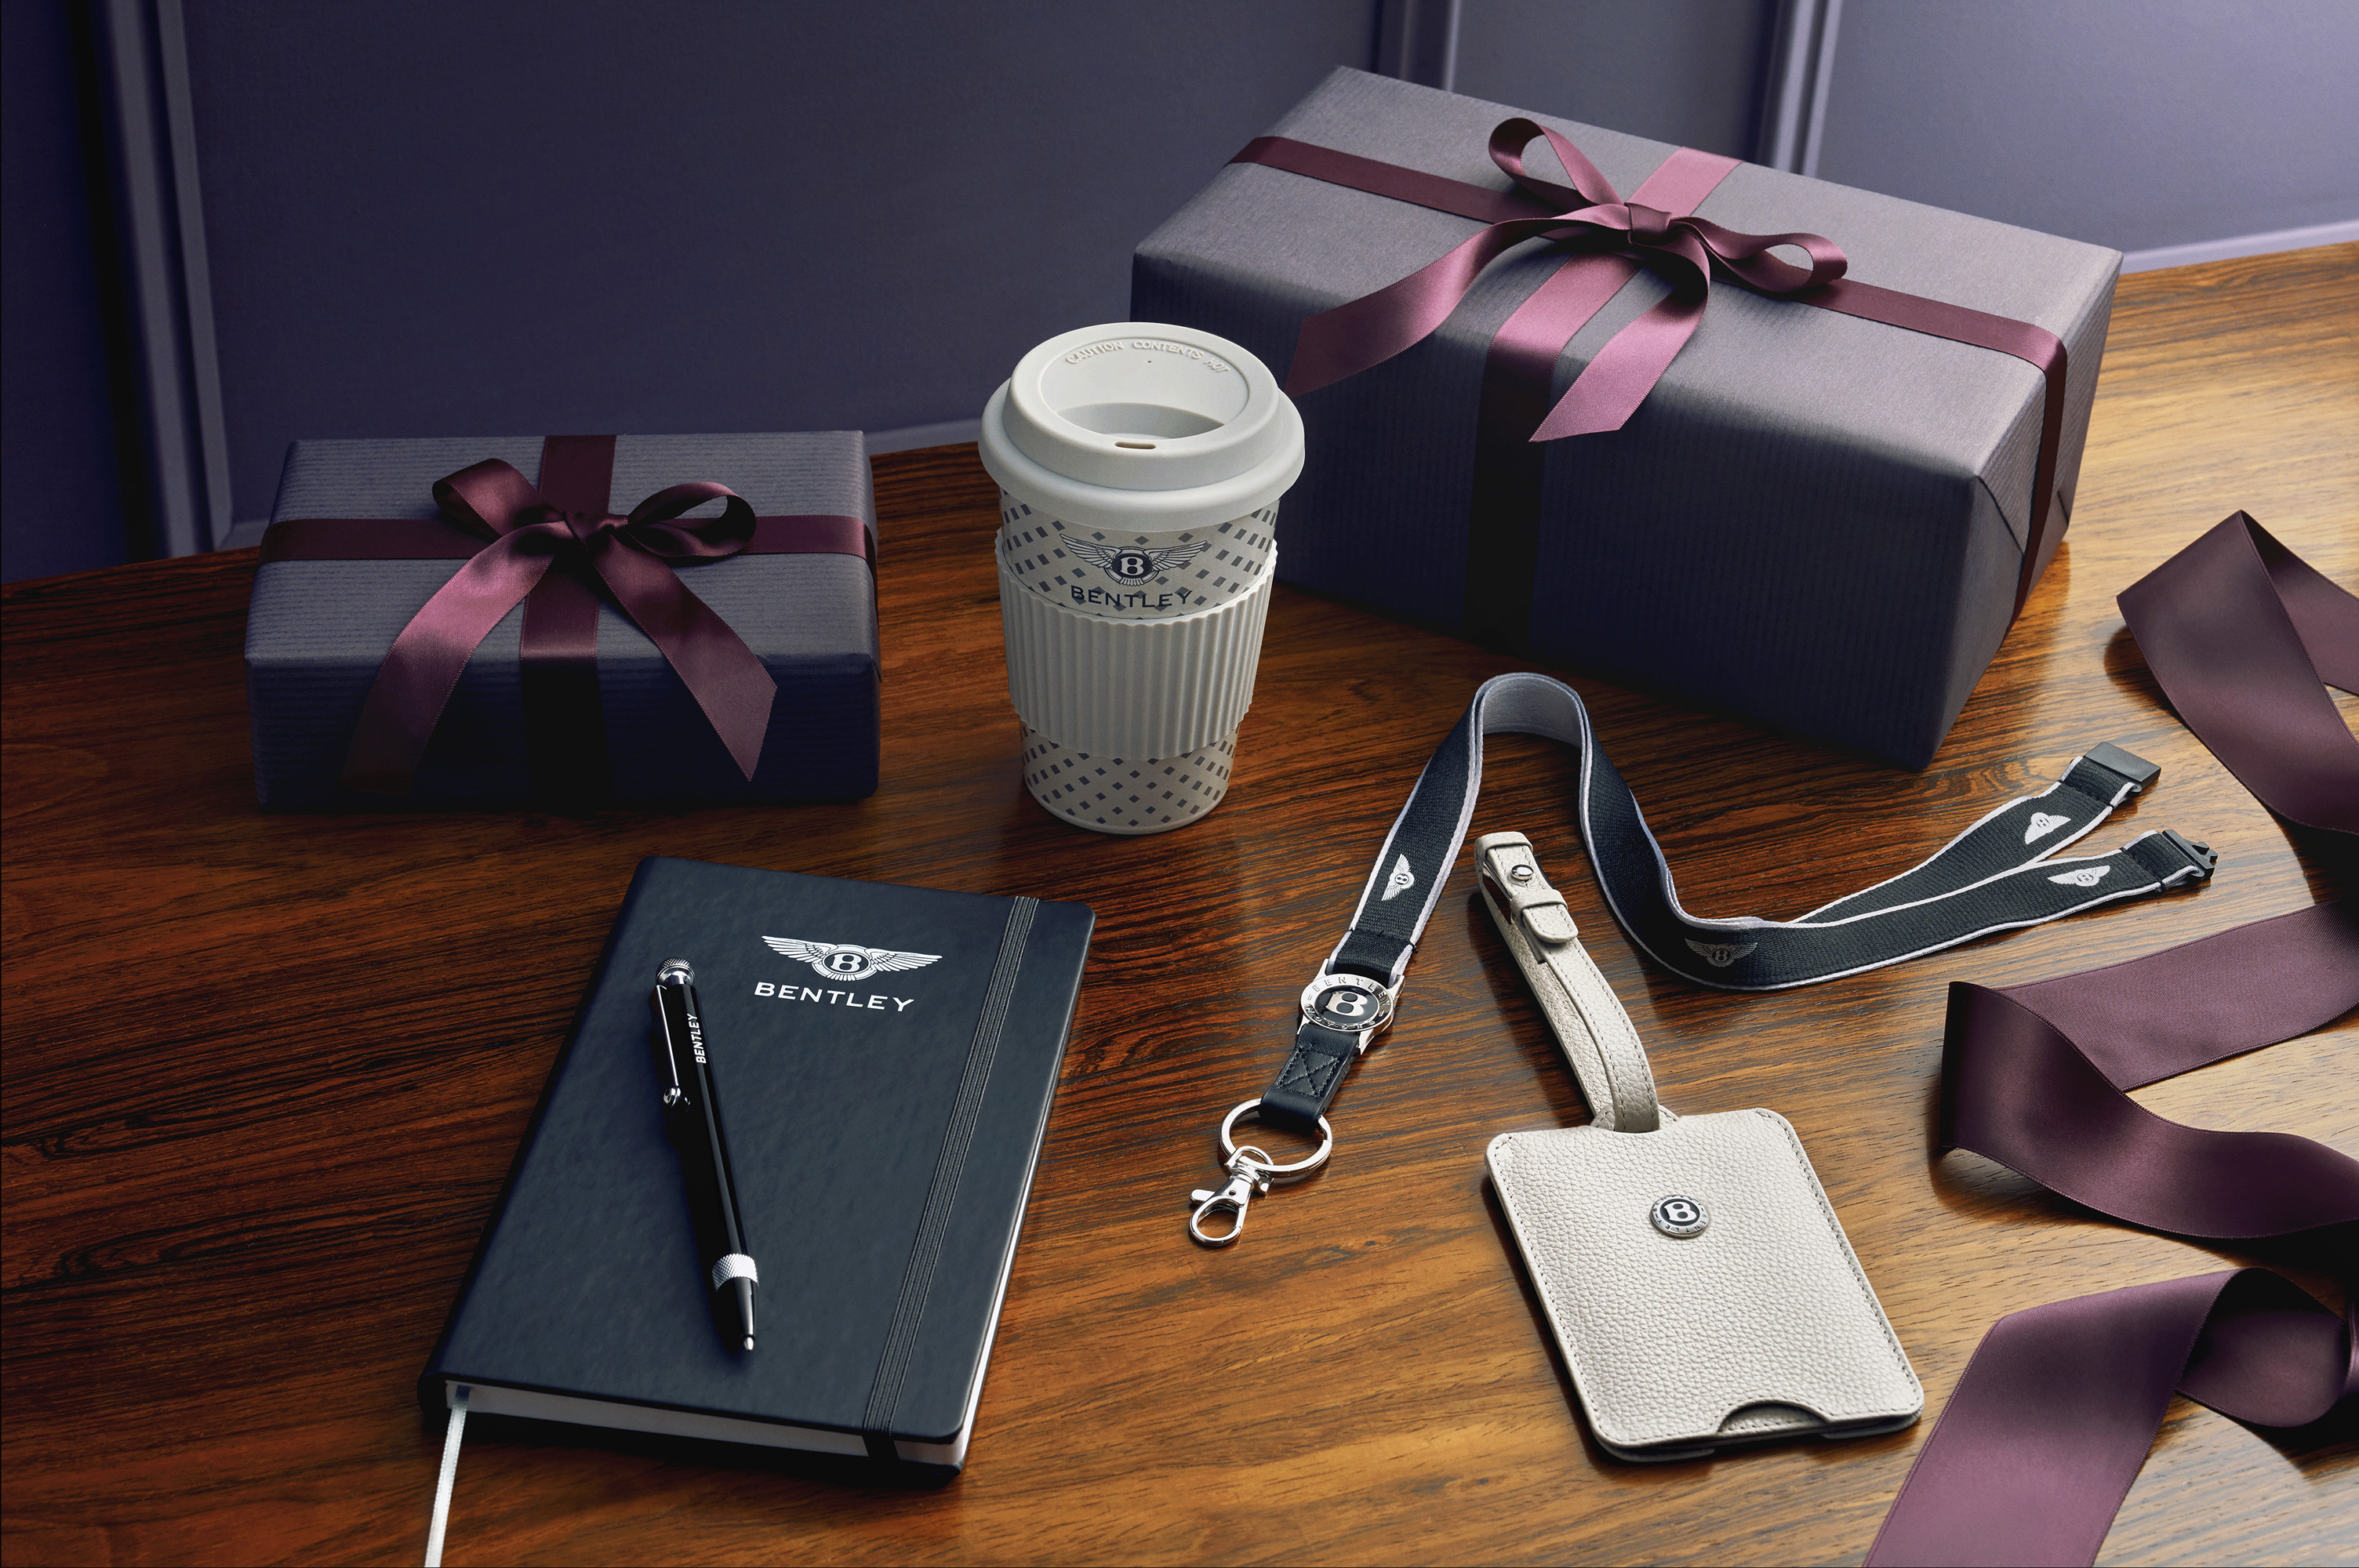 Freshen up your accessories this Spring with new items from the Bentley Collection range!